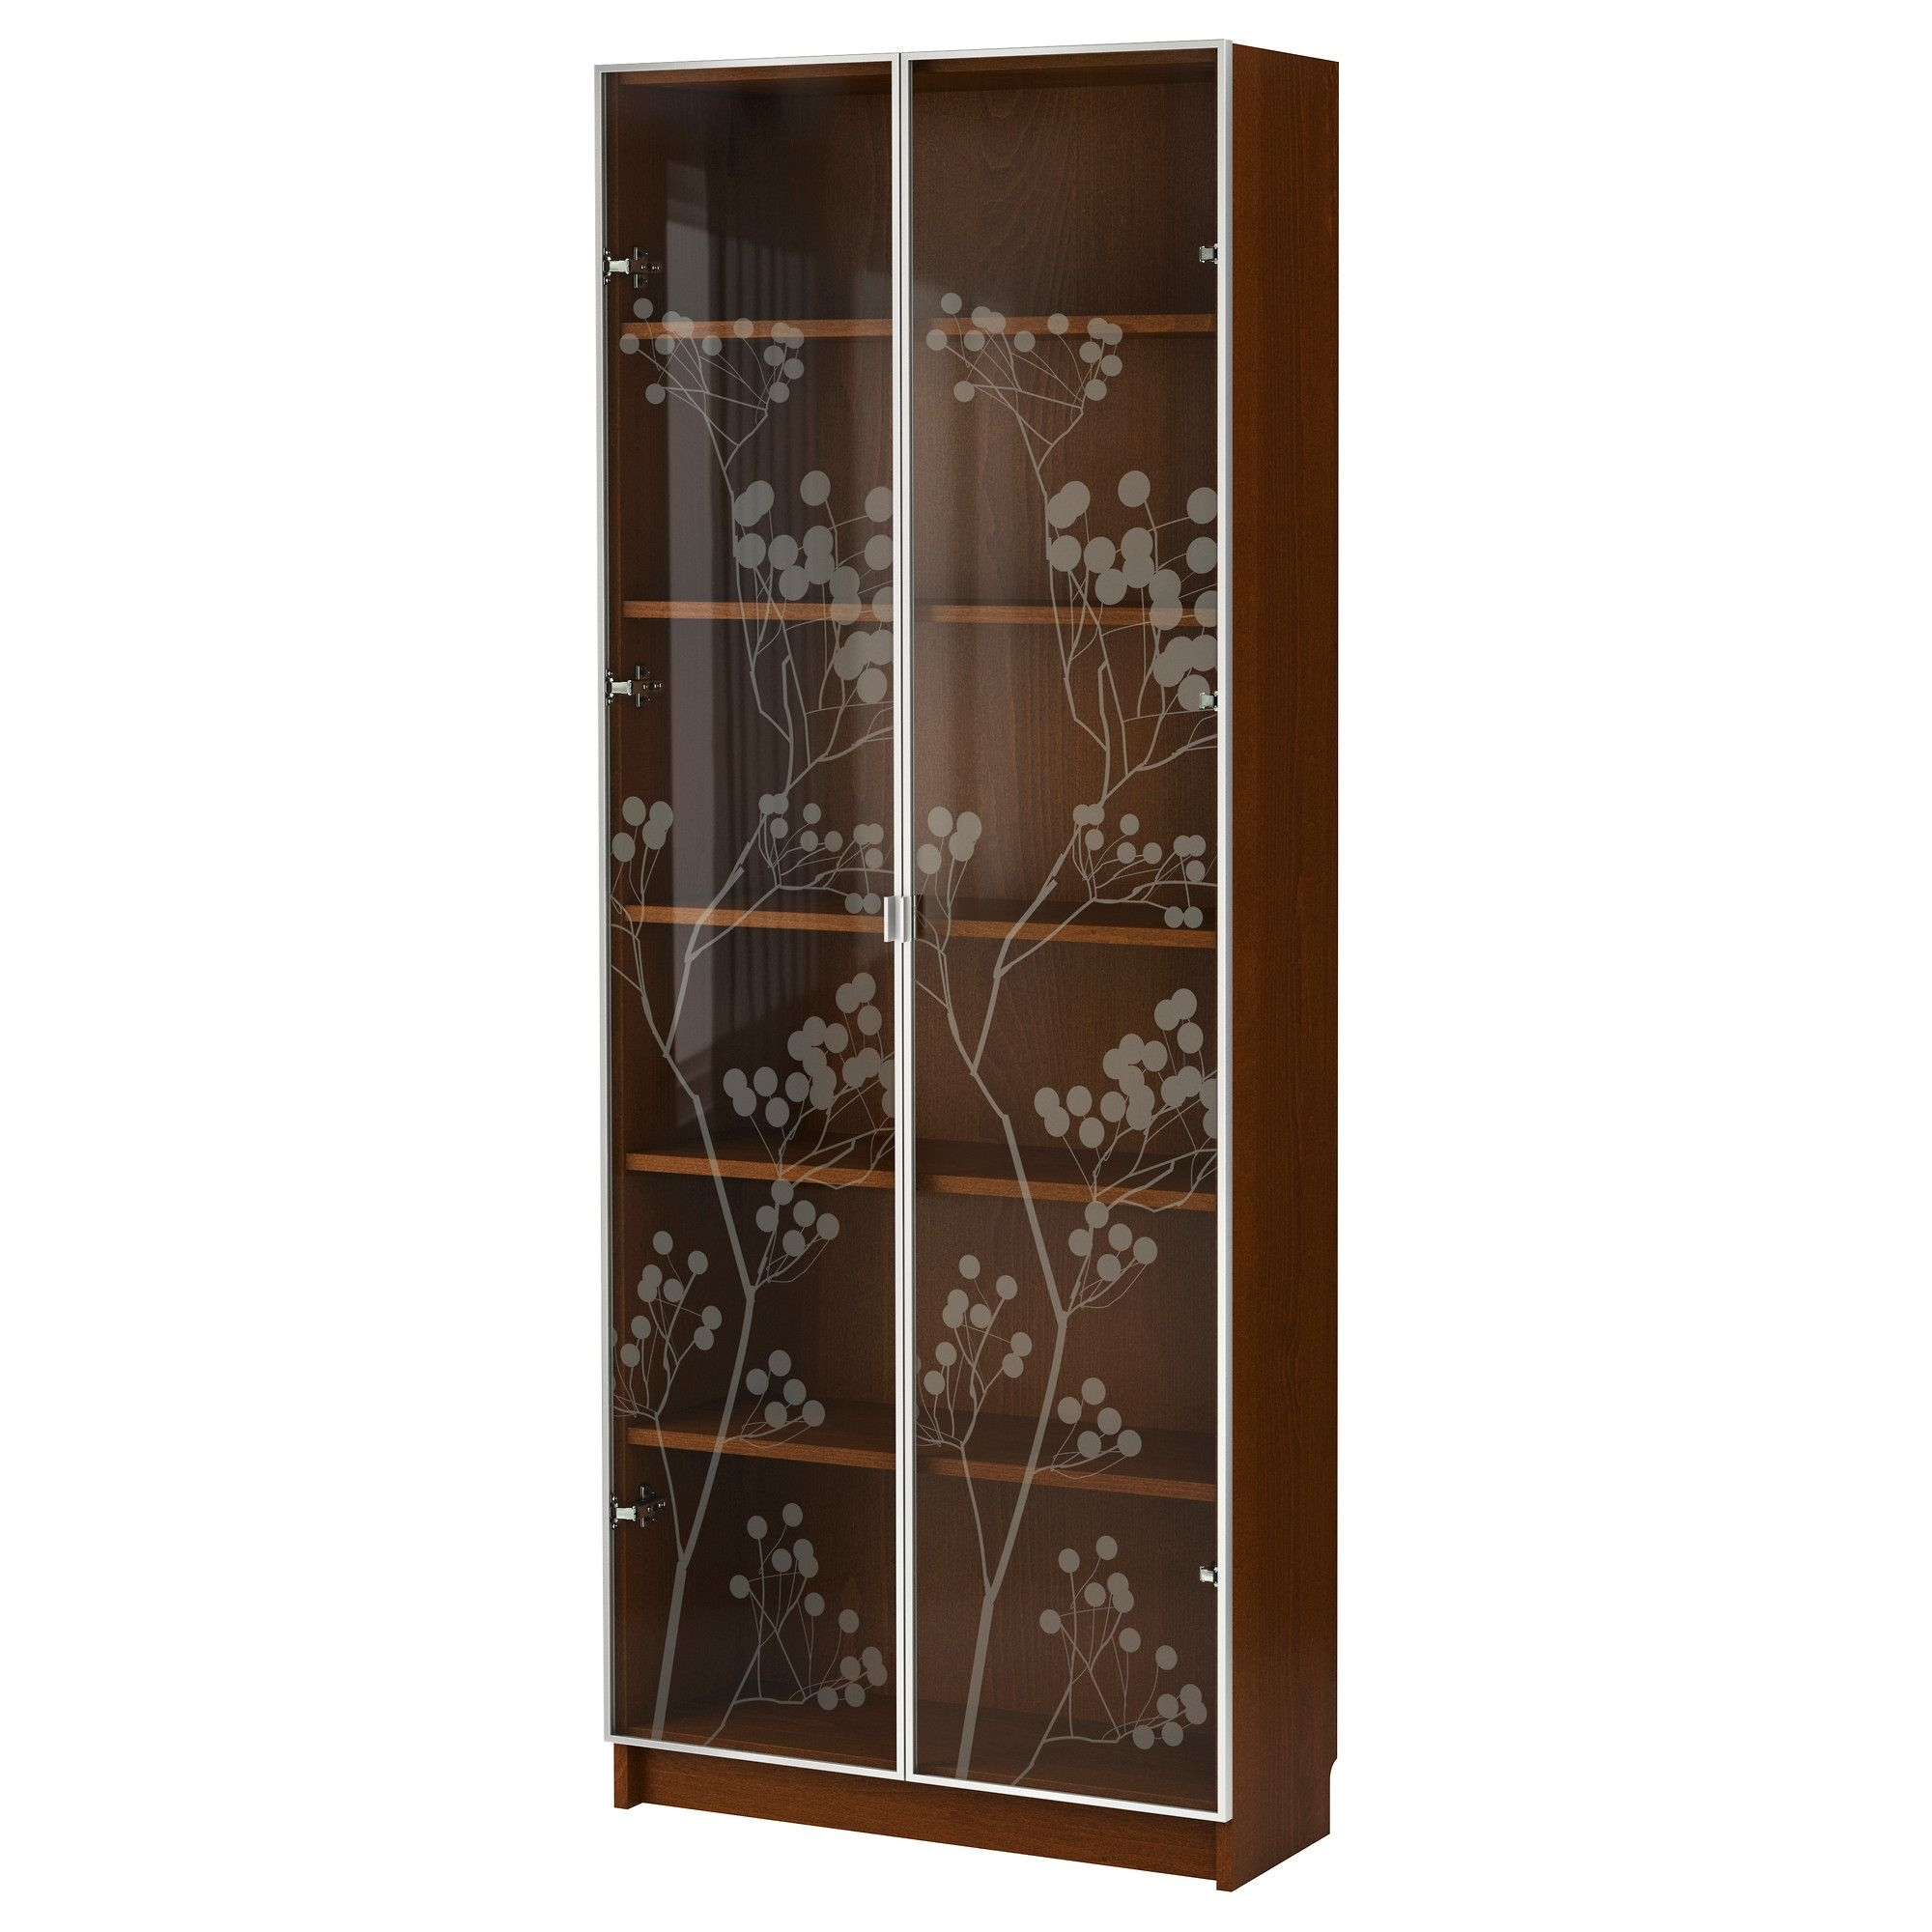 Dvd Cabinet With Glass Doors Ideas On Foter